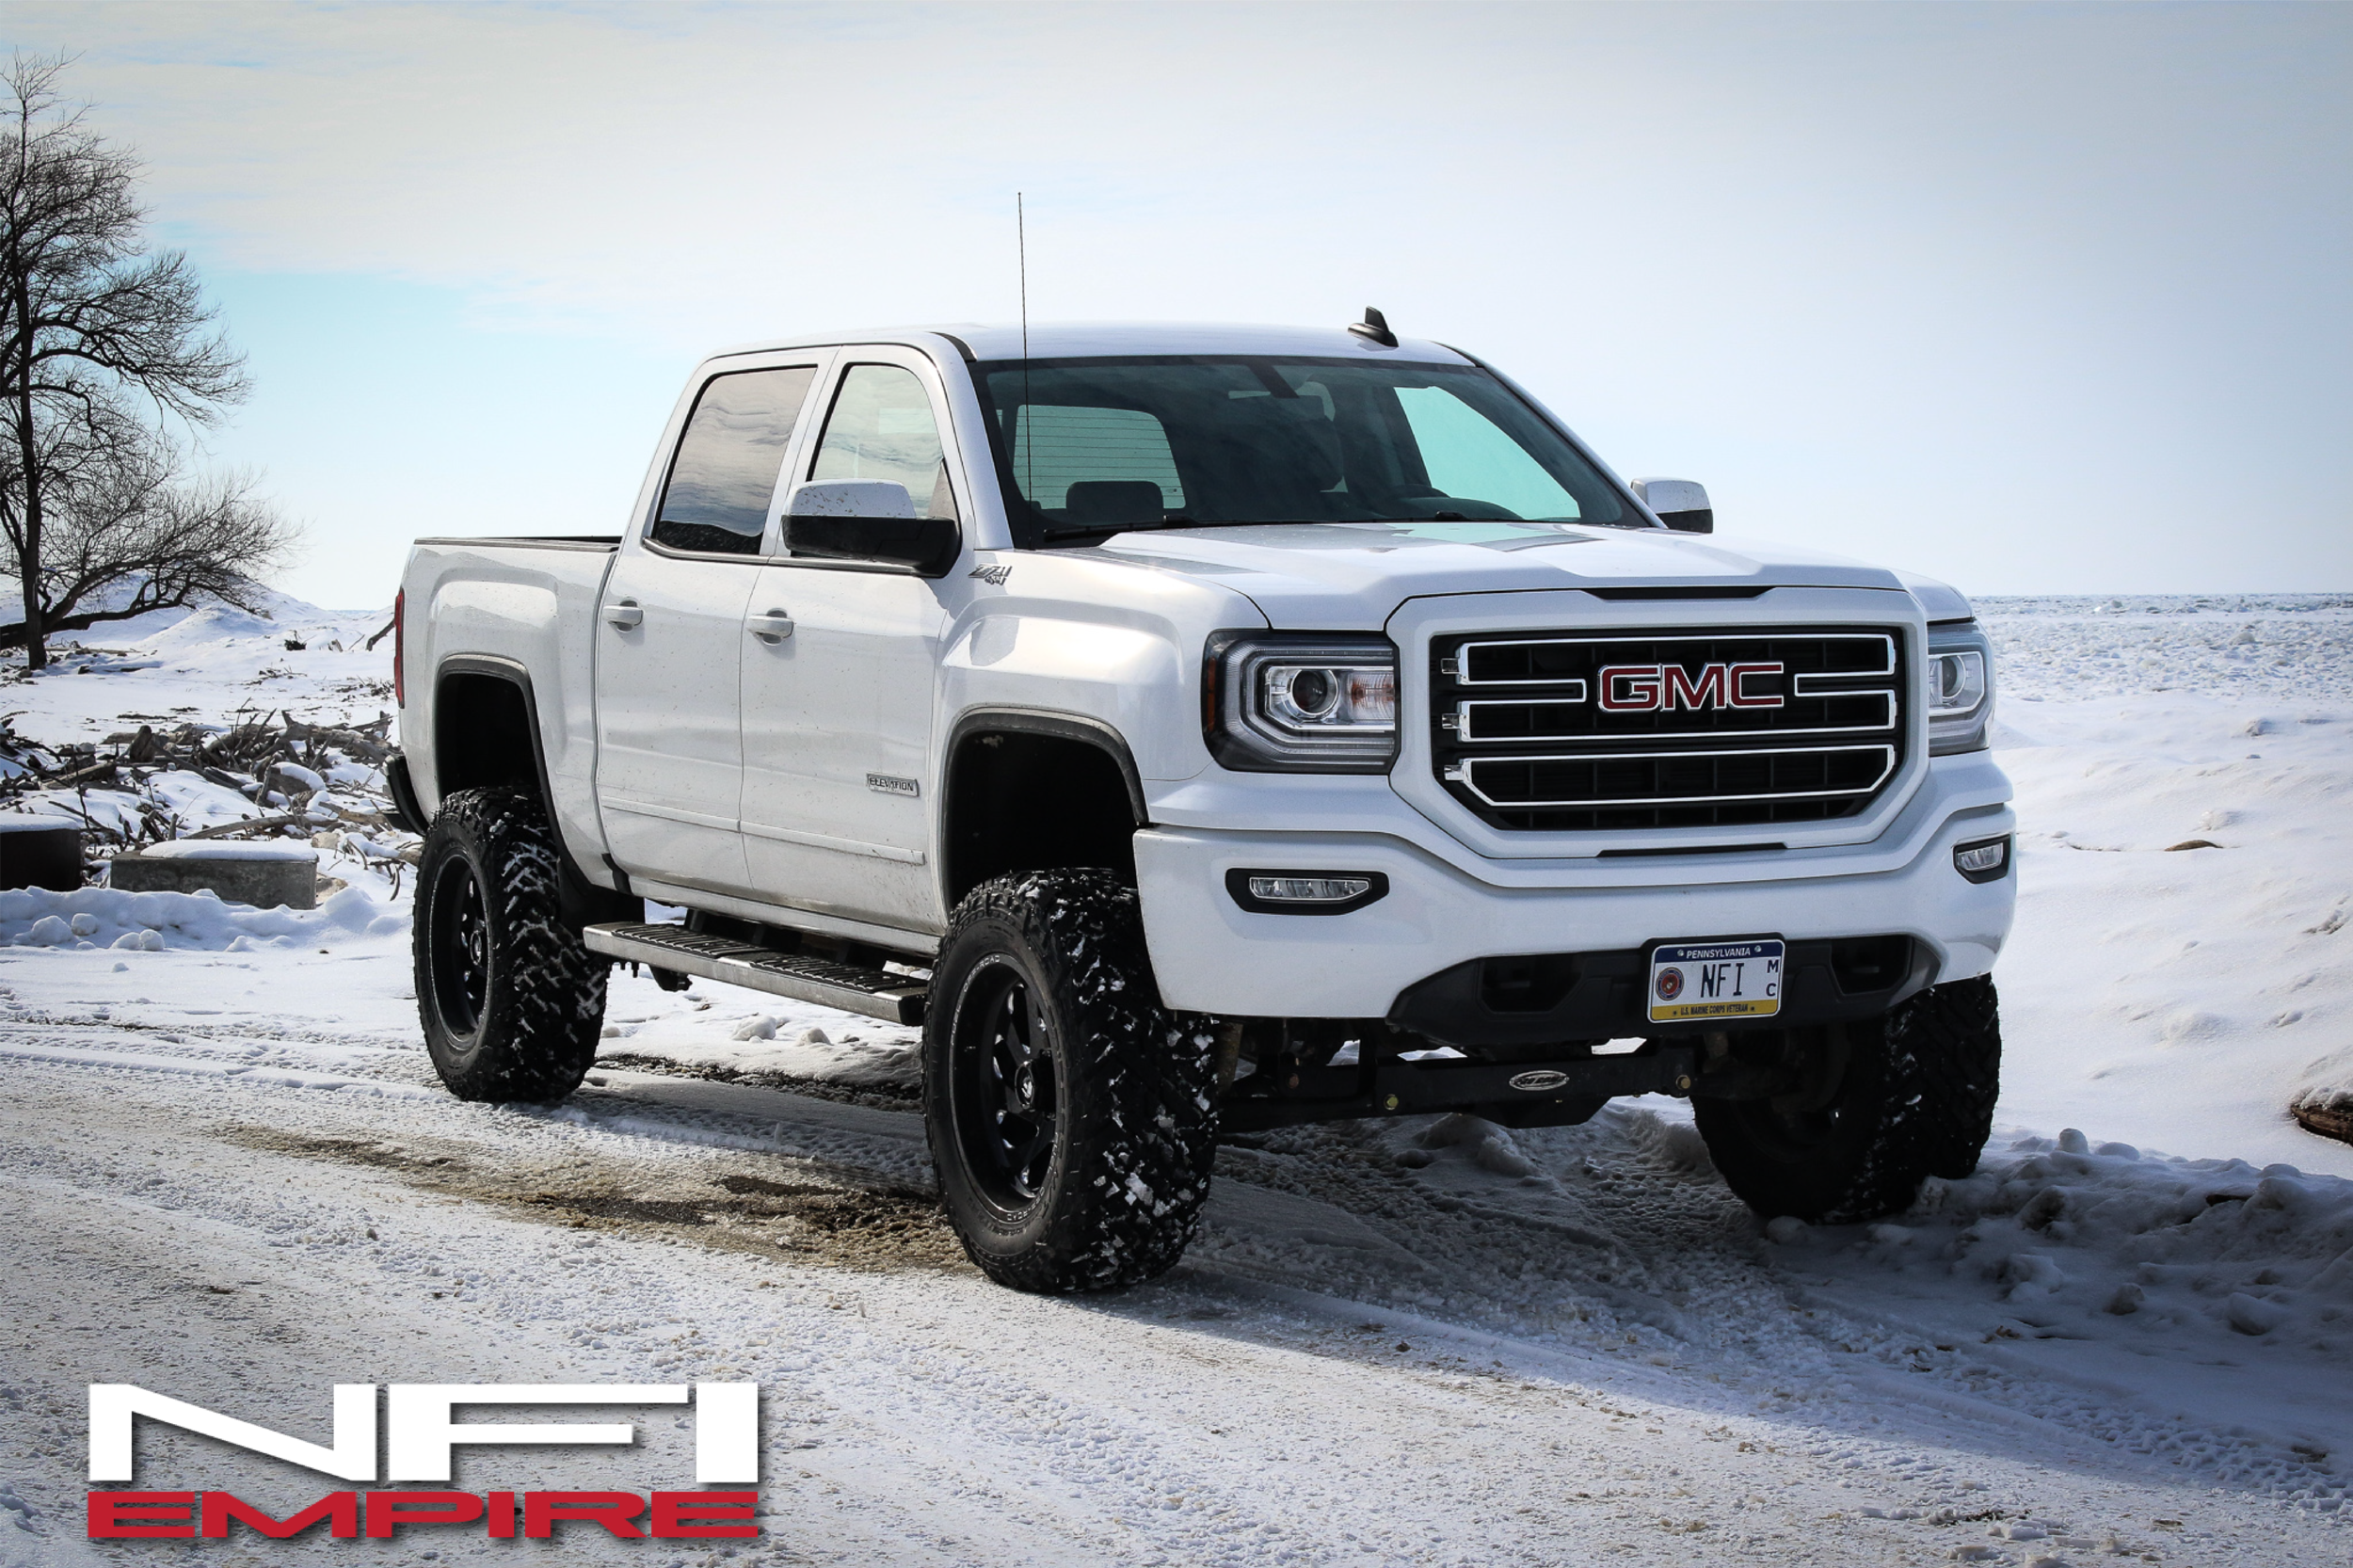 GMC Build - Click to View